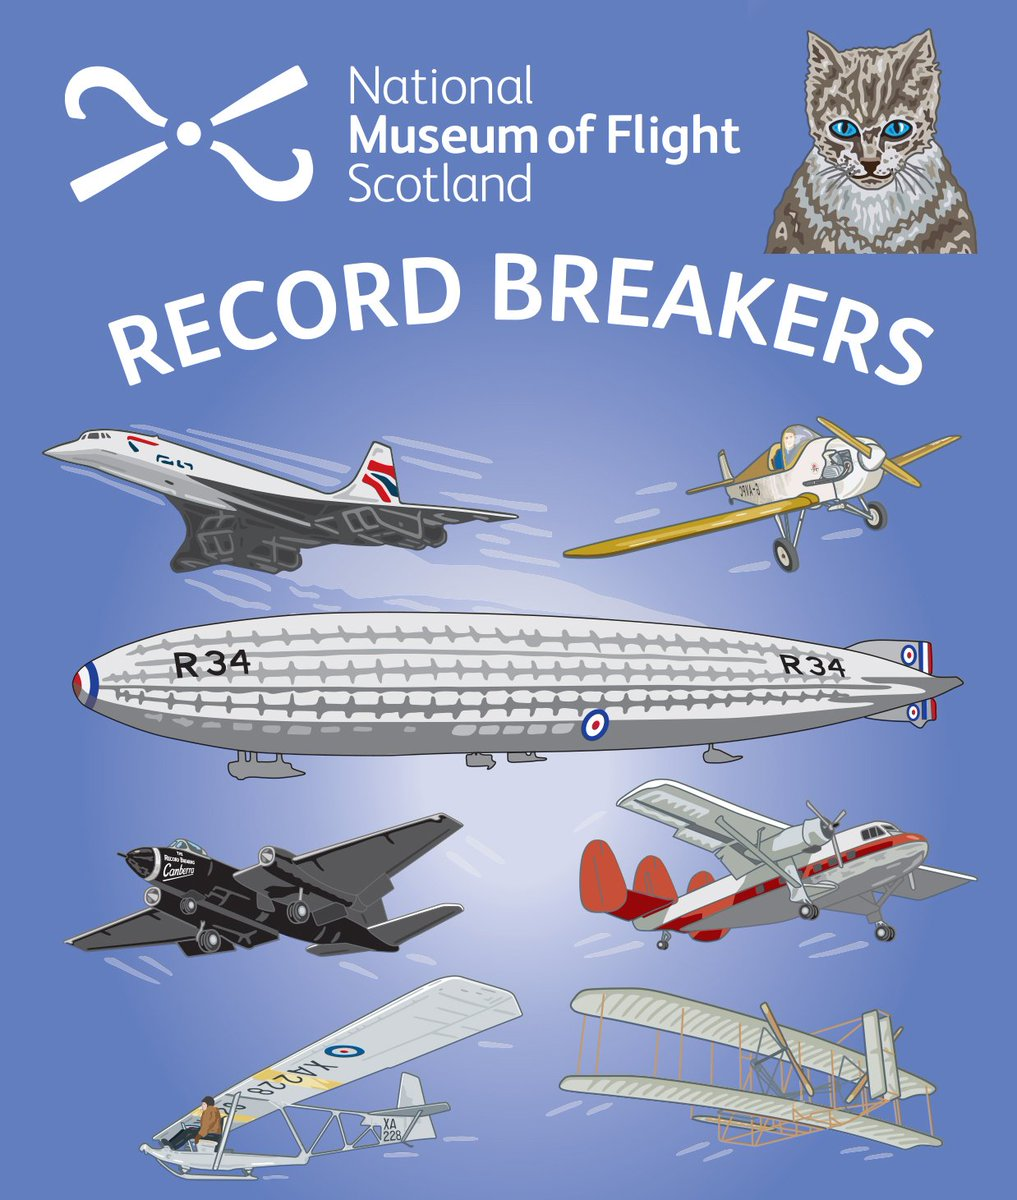 test Twitter Media - 🛩️  Take part in our Record Breakers themed family trail and discover the museum and historic airfield anew.  #nmsflight https://t.co/XXshRwm8KU  (3/6) https://t.co/lRJ0Kx7bQW